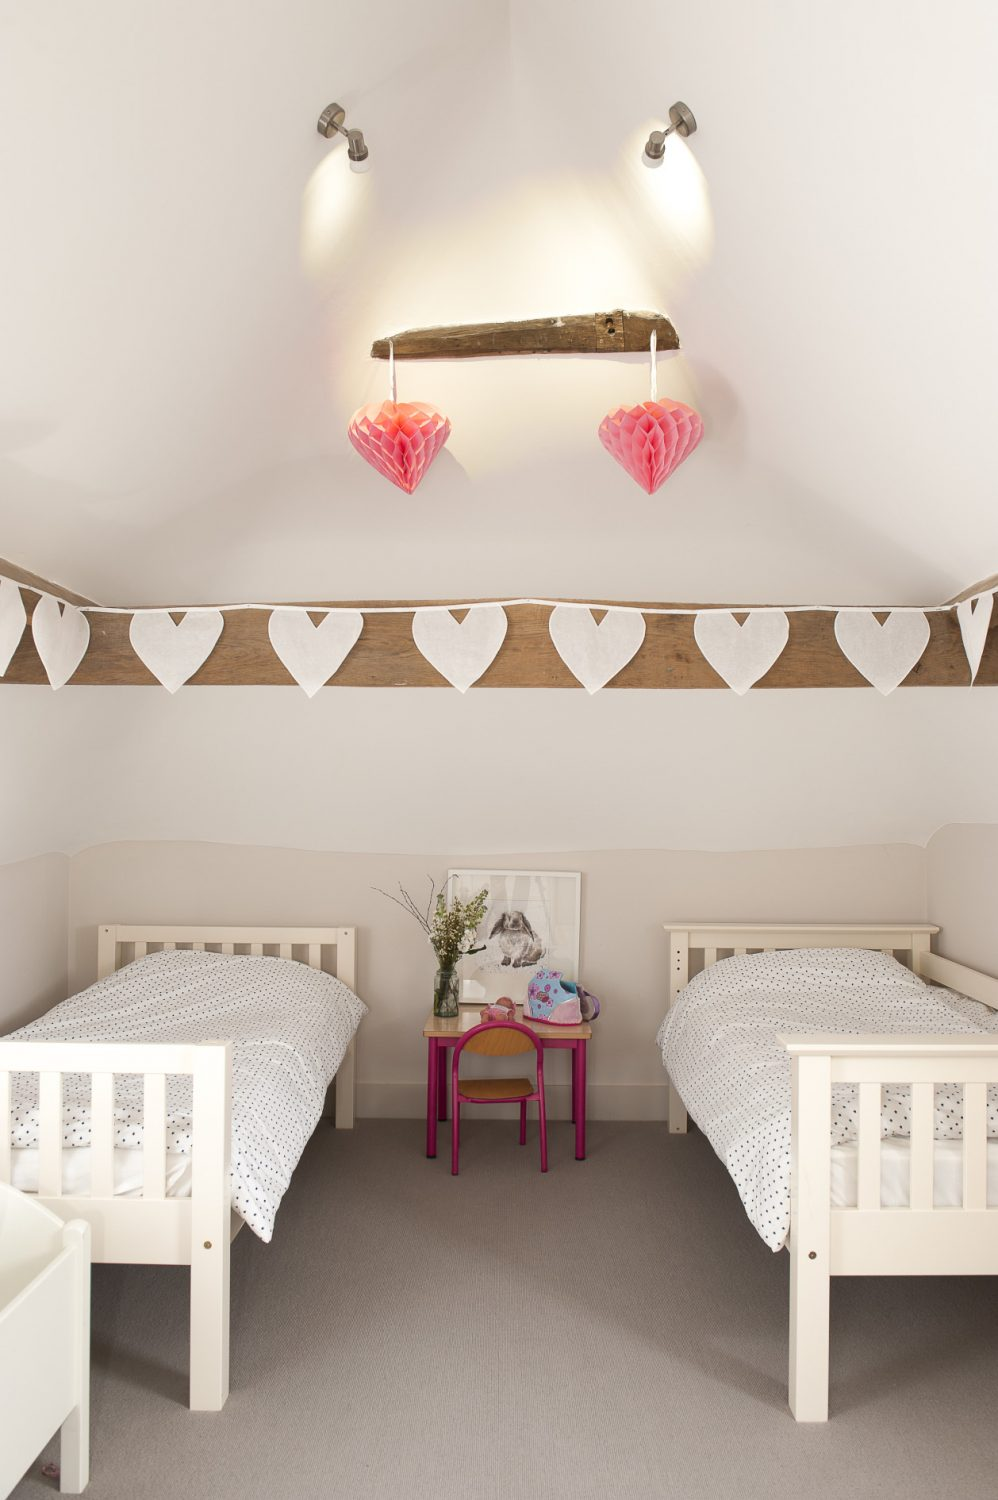 """""""We renovated the first two floors of the house first,"""" says Perrine, """"and then had to wait while we got planning permission for our plans for the top floor."""" Thankfully, approval was granted, and the children now love their cosy rooms"""